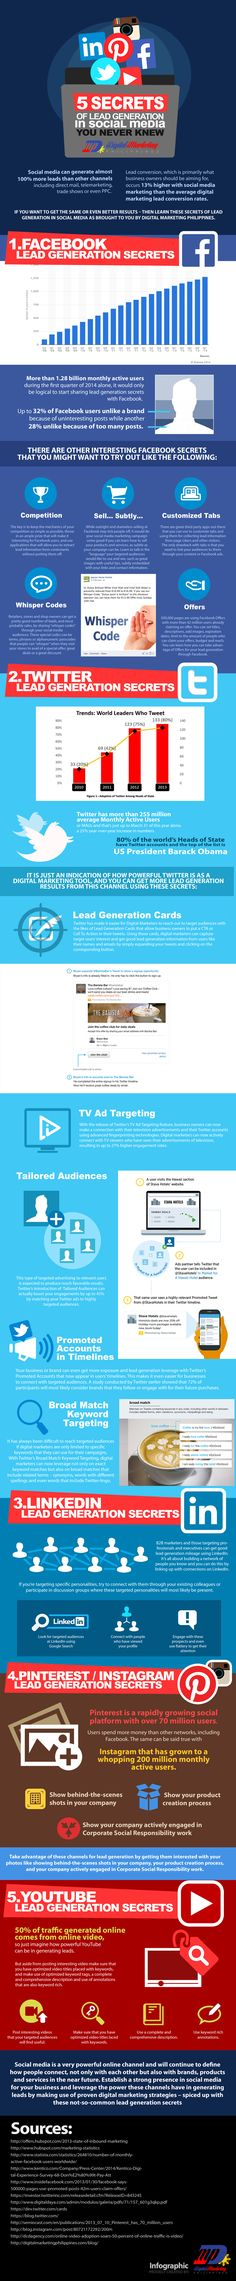 5 Secrets of Lead Generation in Social Media You Never Knew (Infographic)